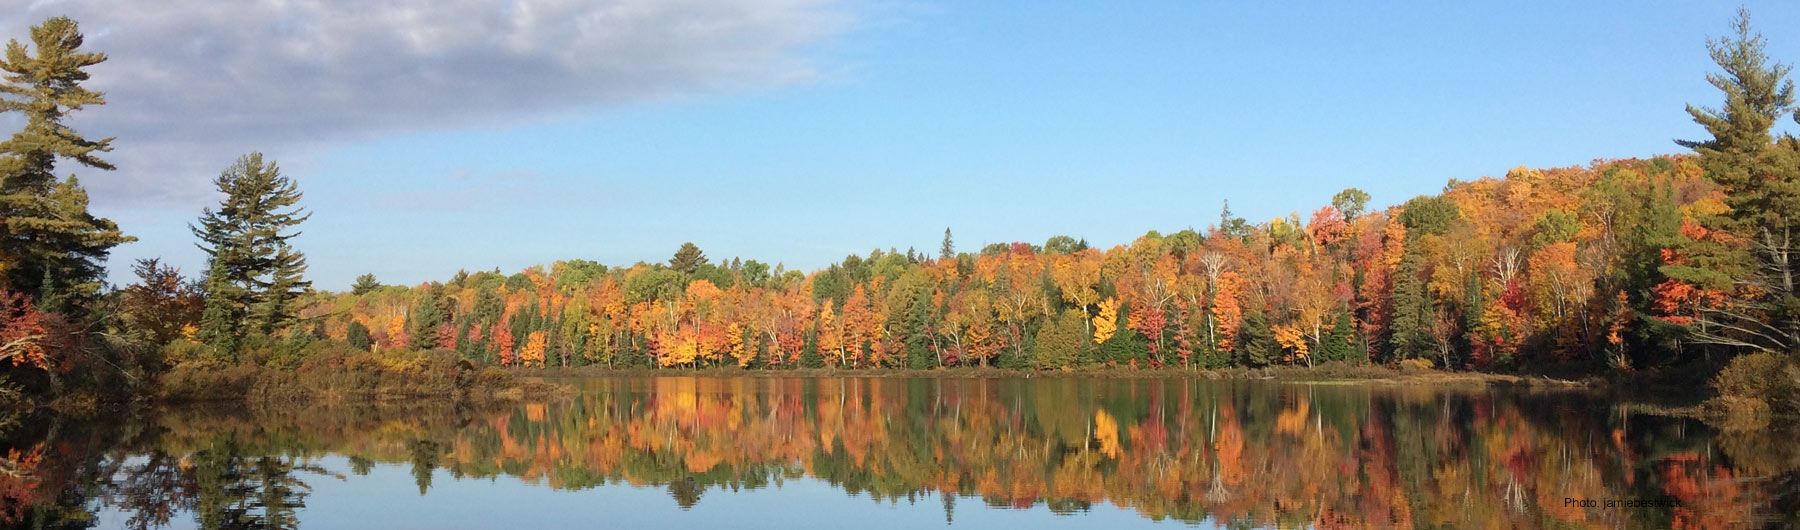 lakeview of trees in beautiful fall colours